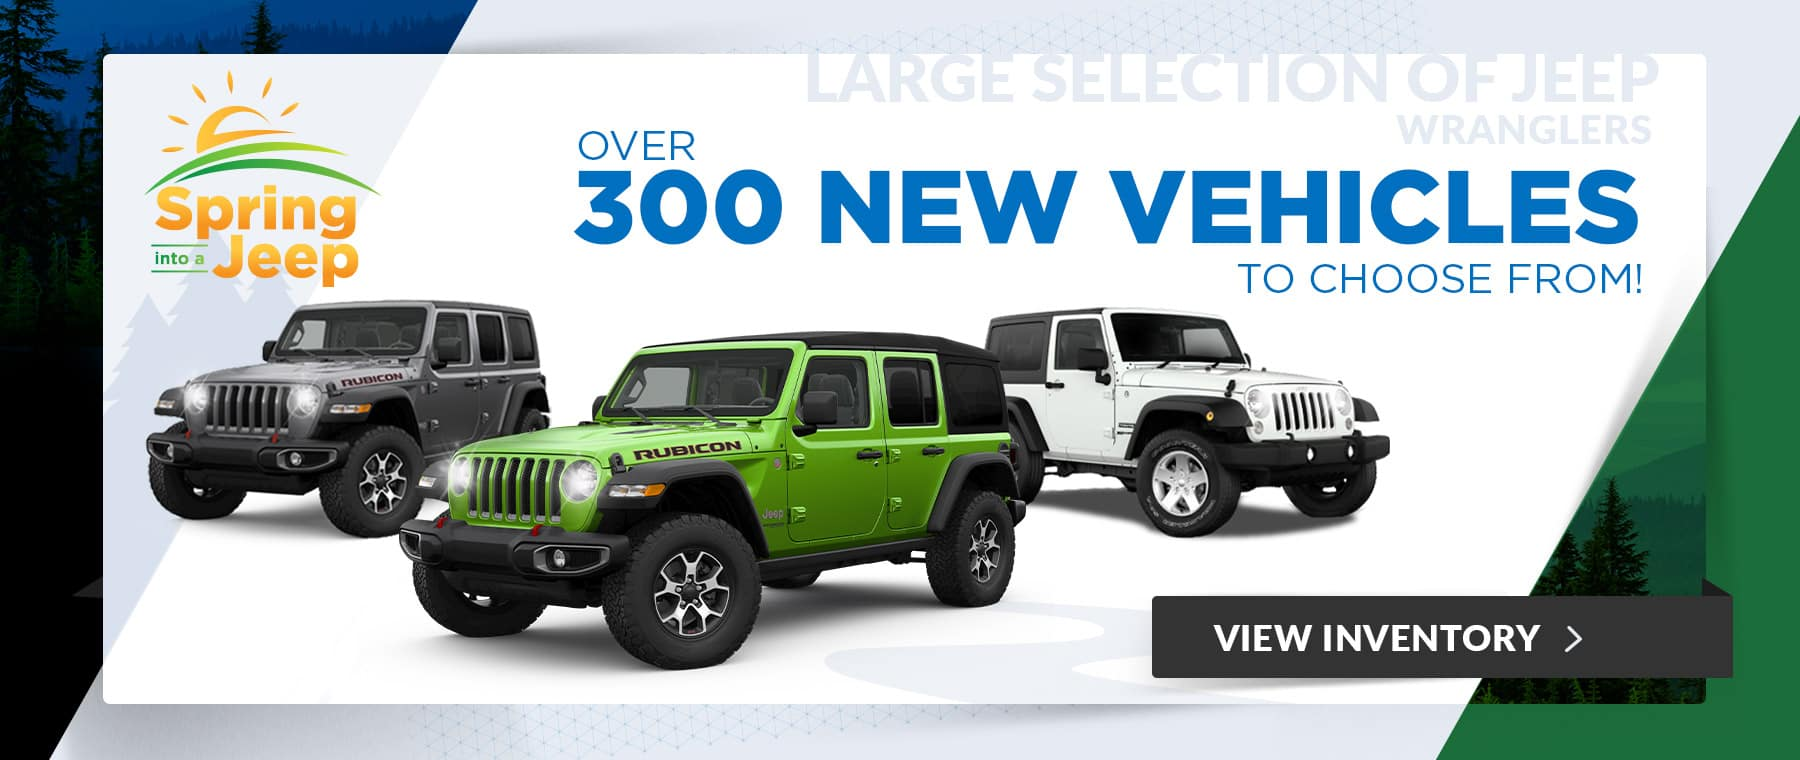 Chrysler Jeep Dodge Ram Dealer Wilsonville OR | Wilsonville Jeep Ram